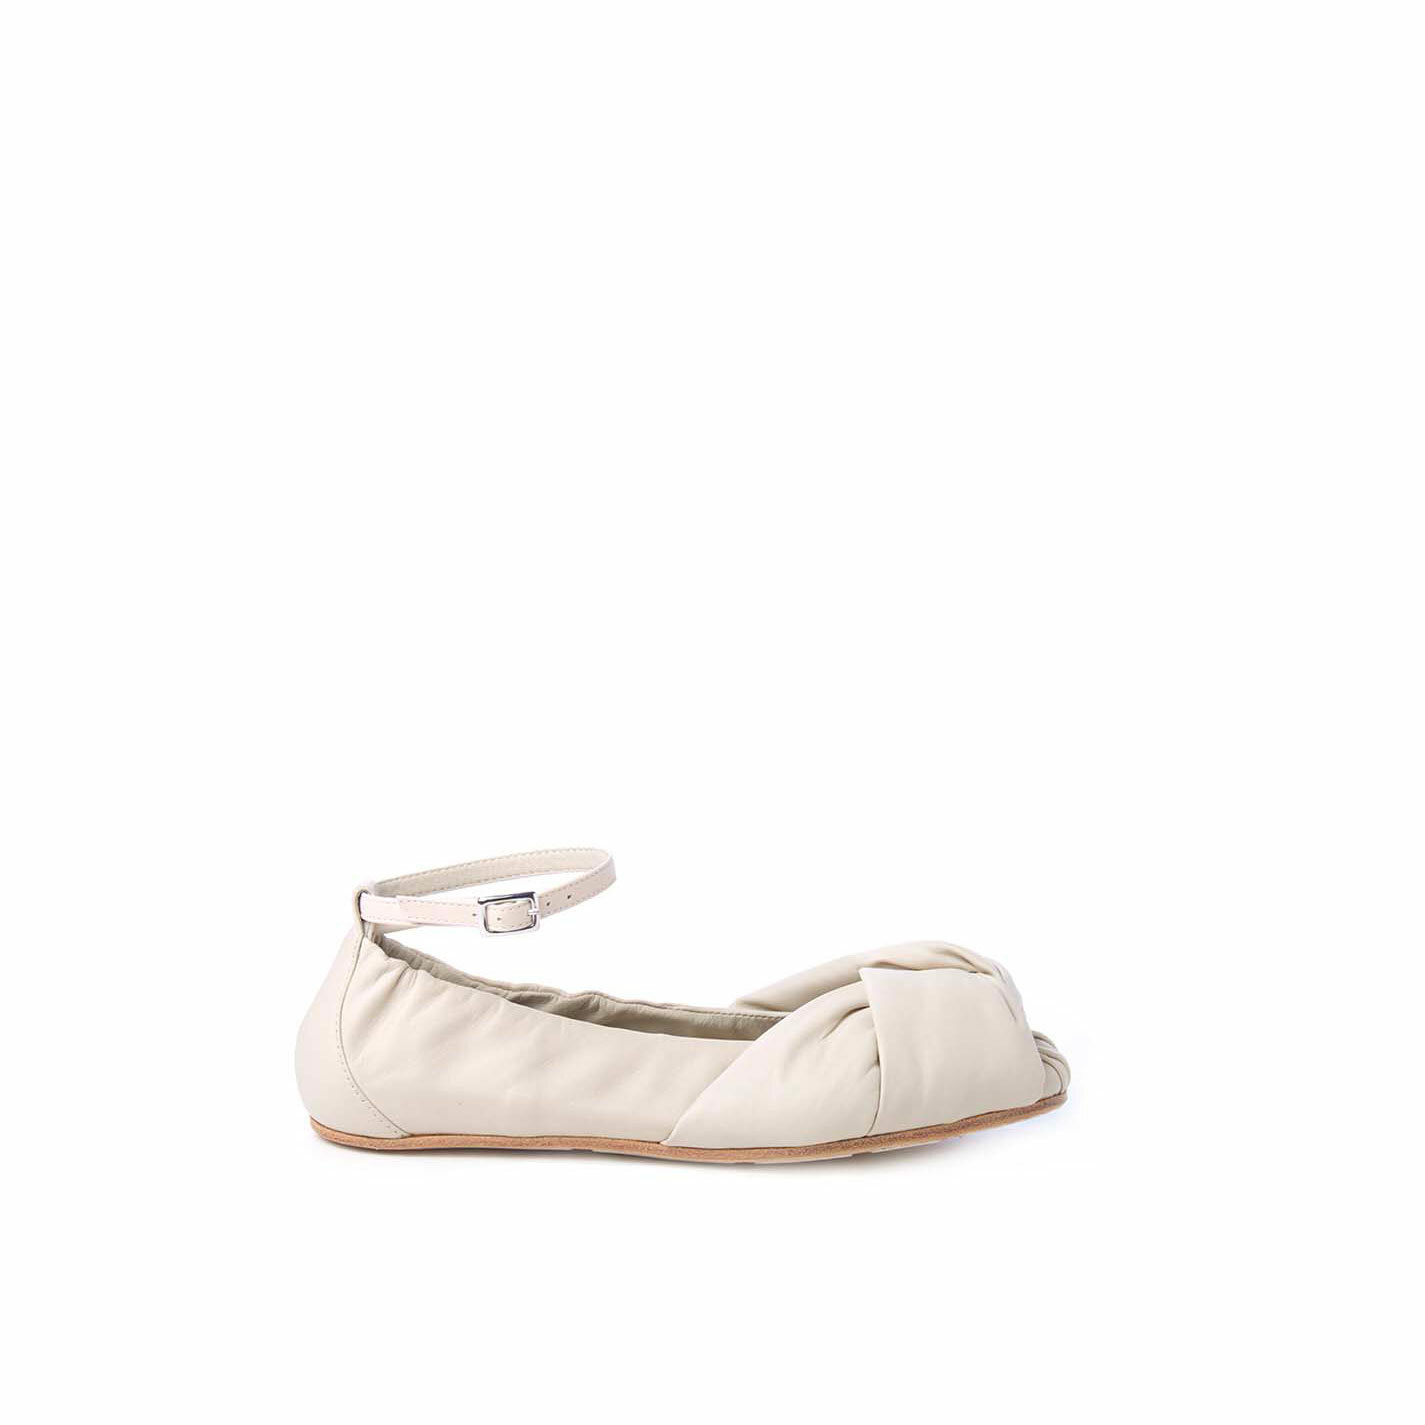 Ballerina flats in soft ivory-coloured nappa leather with knot